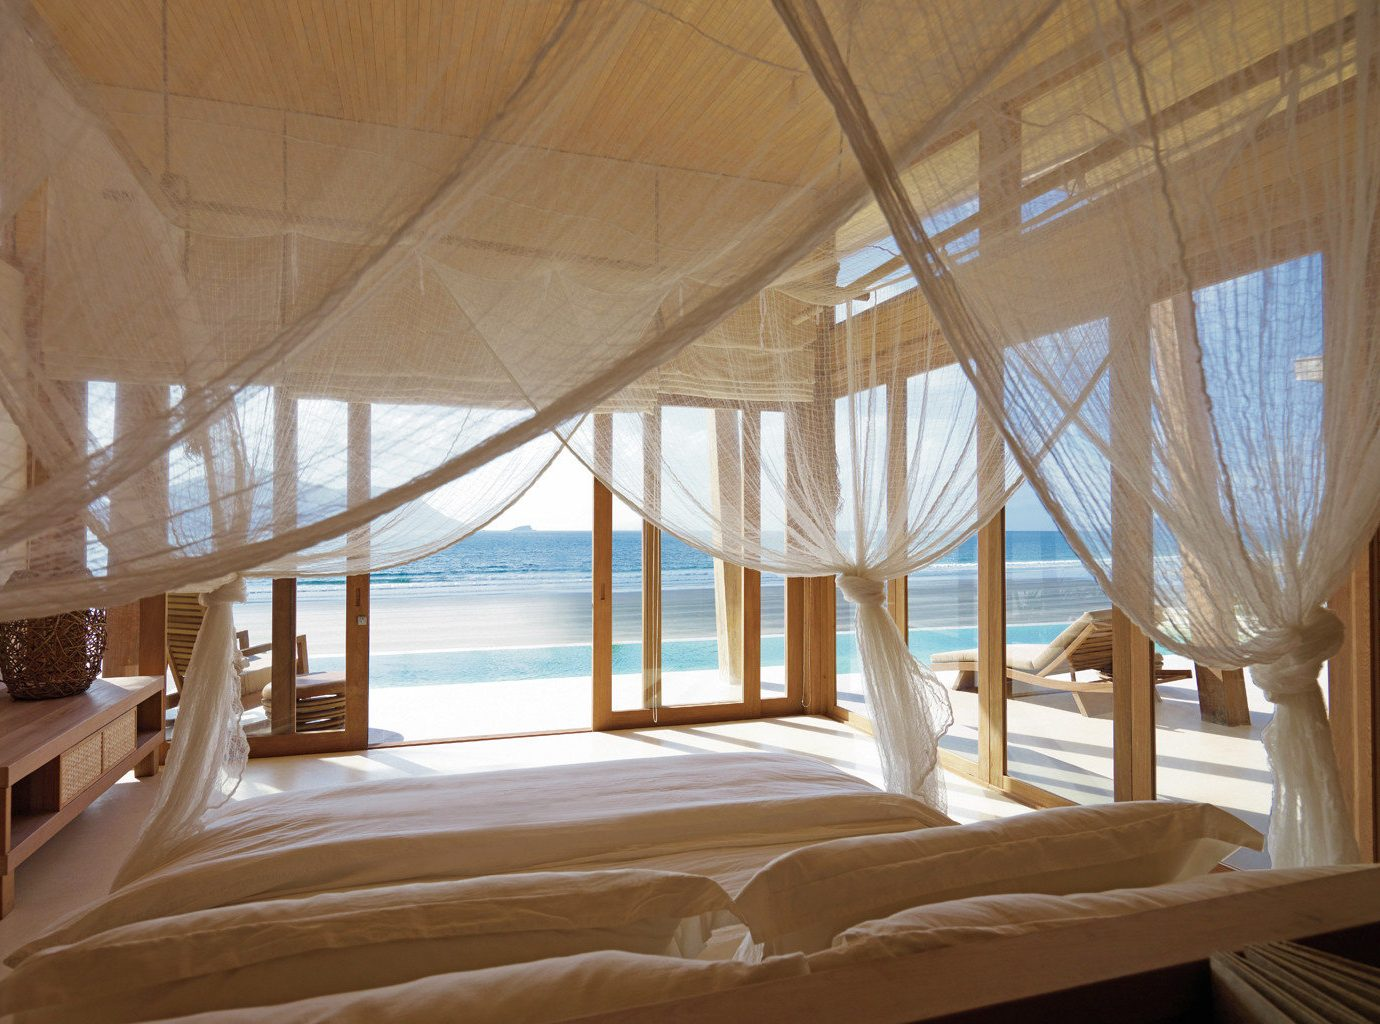 Beach Beachfront Bedroom Eco Elegant Forest Hotels Jungle Luxury Mountains Ocean Patio Scenic views Secret Getaways Trip Ideas Villa Waterfront chair property house Architecture home daylighting Resort